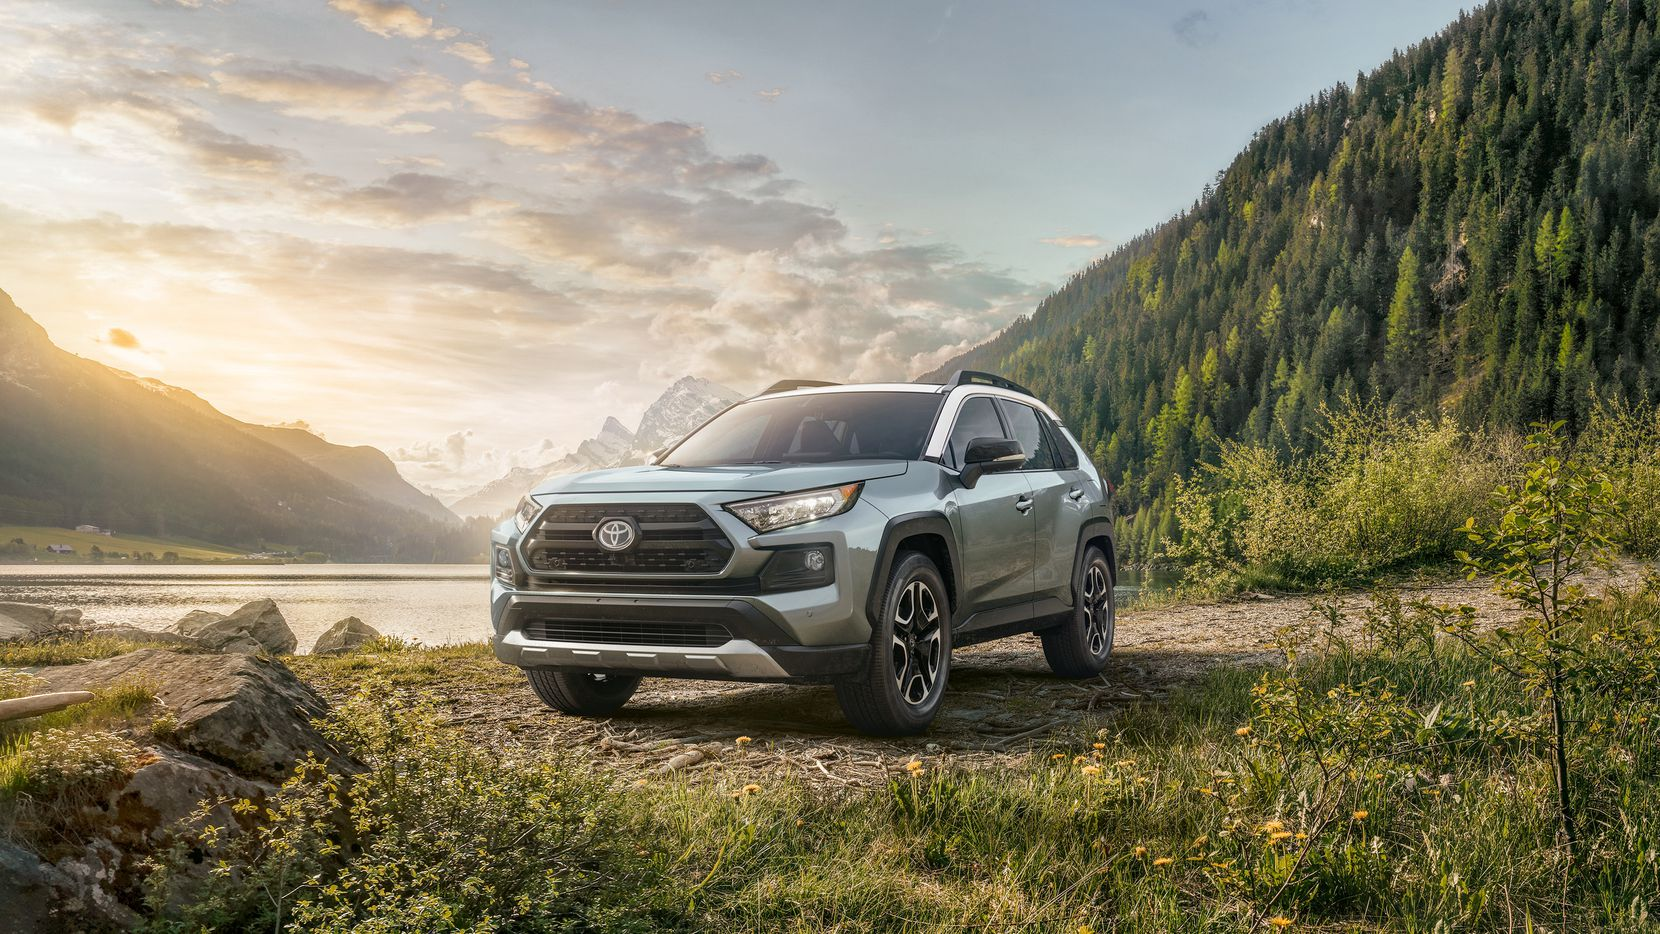 The fifth generation RAV4 Adventure features a more muscular build.